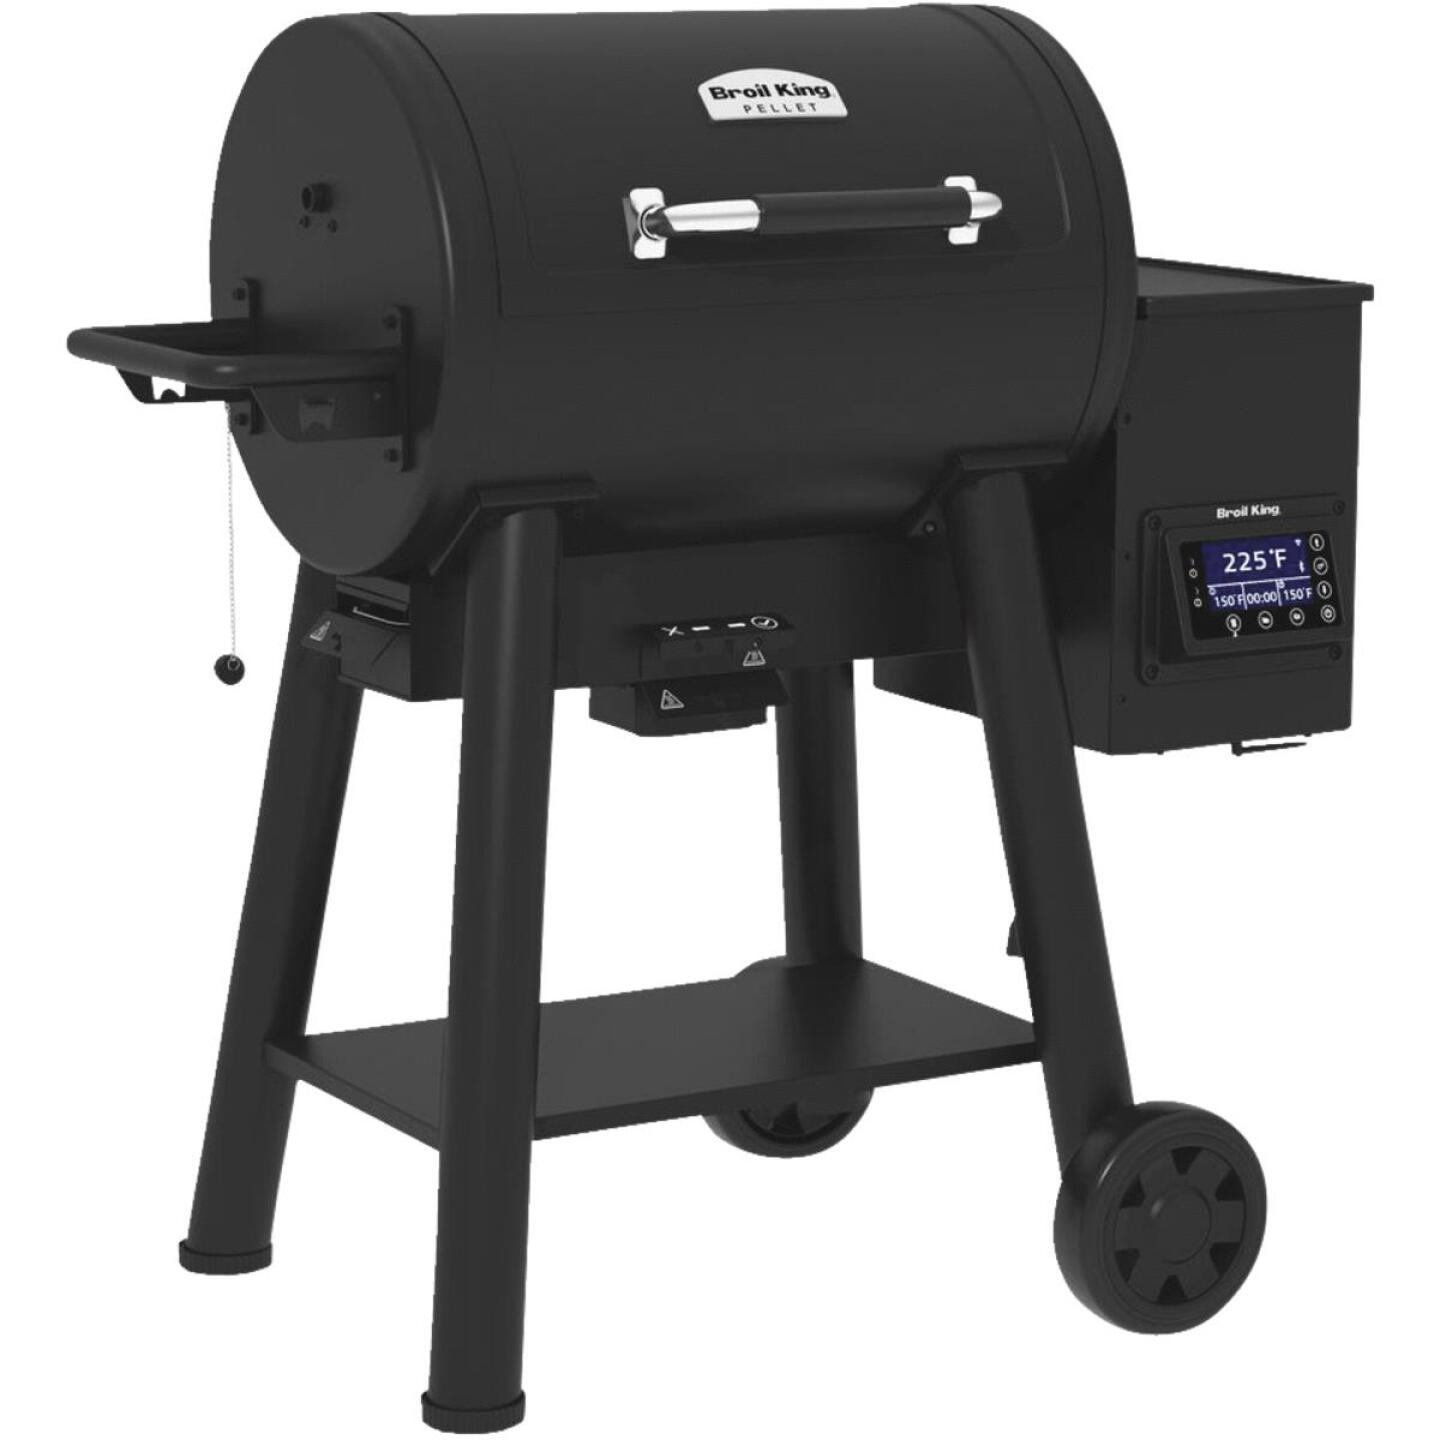 Broil King Baron Pellet 400 Black 635 Sq. In. Grill Image 3